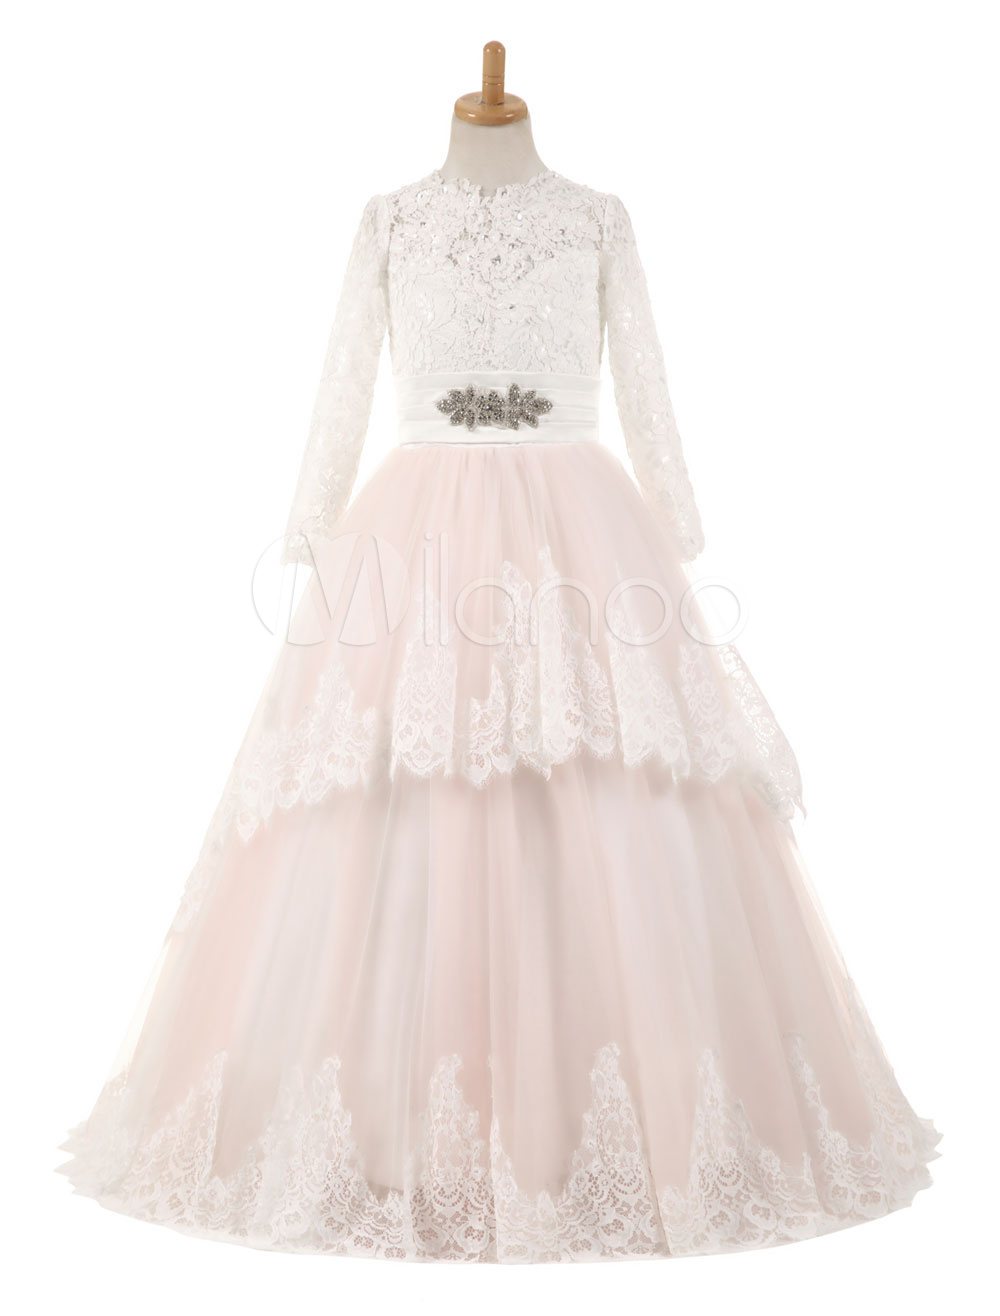 Flower Girl Dresses Lace Tulle Bows Pageant Dresses V Neck Long Sleeve Sash Ivory Princess Gown With Sweep Train